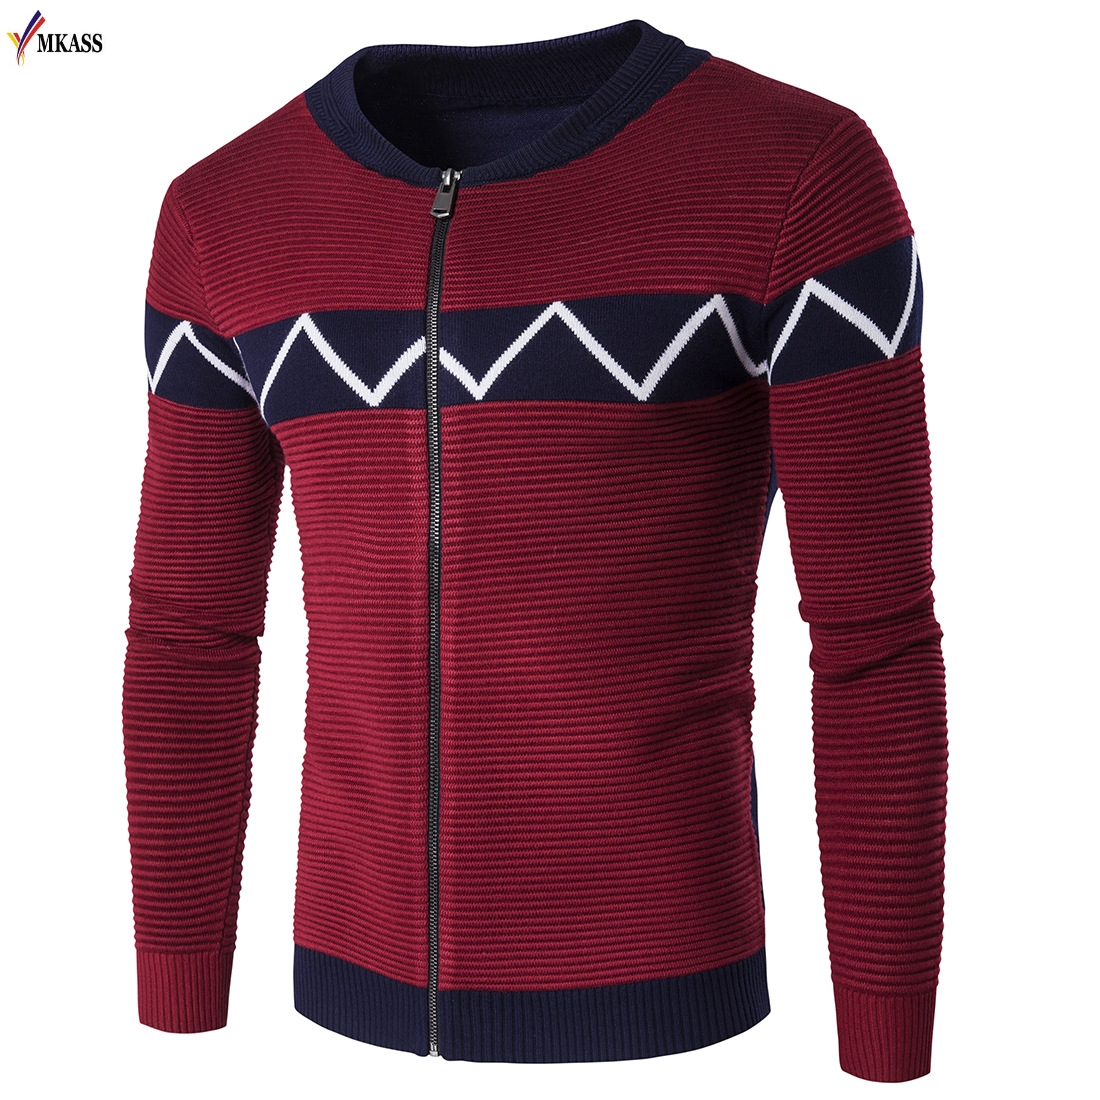 2017 New Mens Zipper Sweater Autumn Winter Cardigans Sweaters Knitwear Cardigan masculino Bblack Sweater Men christmas 2XL